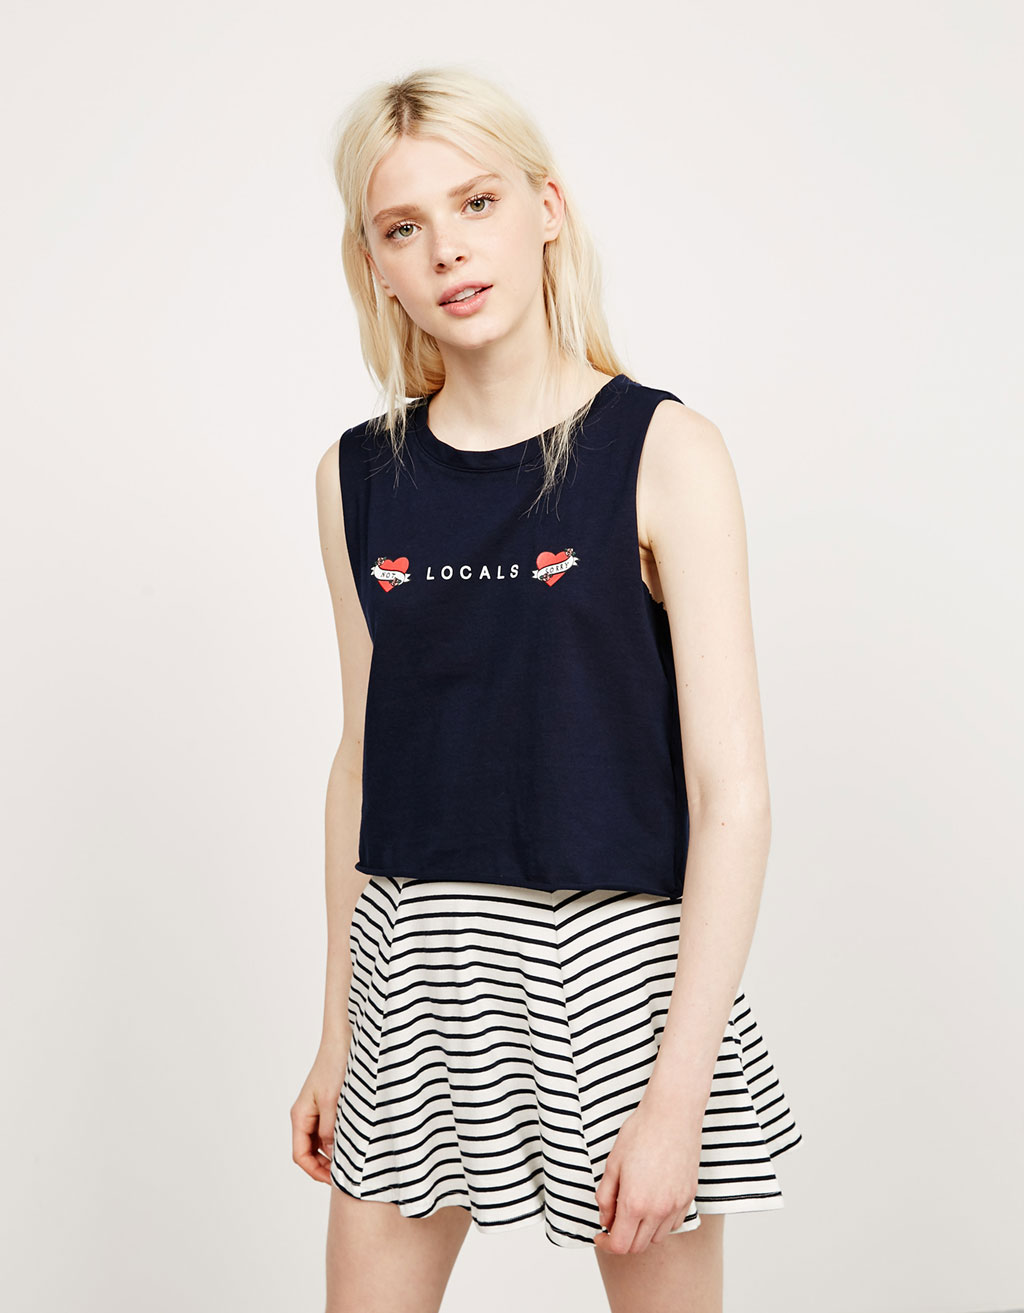 BSK sleeveless anchor/hearts top